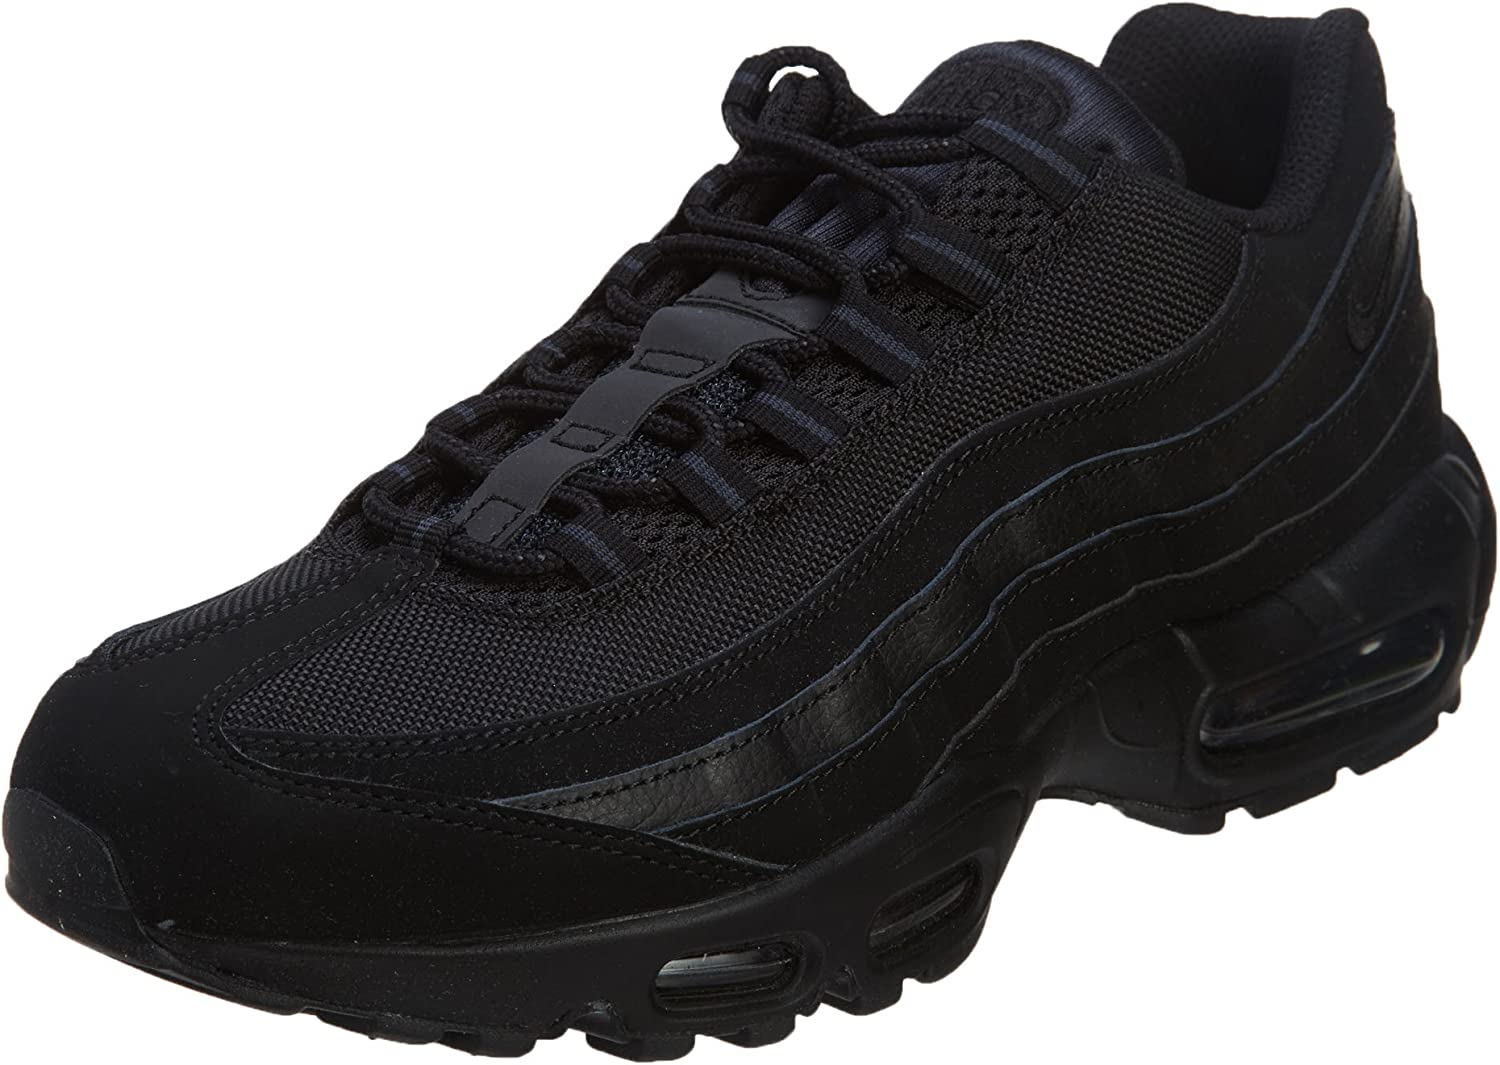 Nike Air Air Air Max 95, Men's Trainers 02aee0 cfrqf